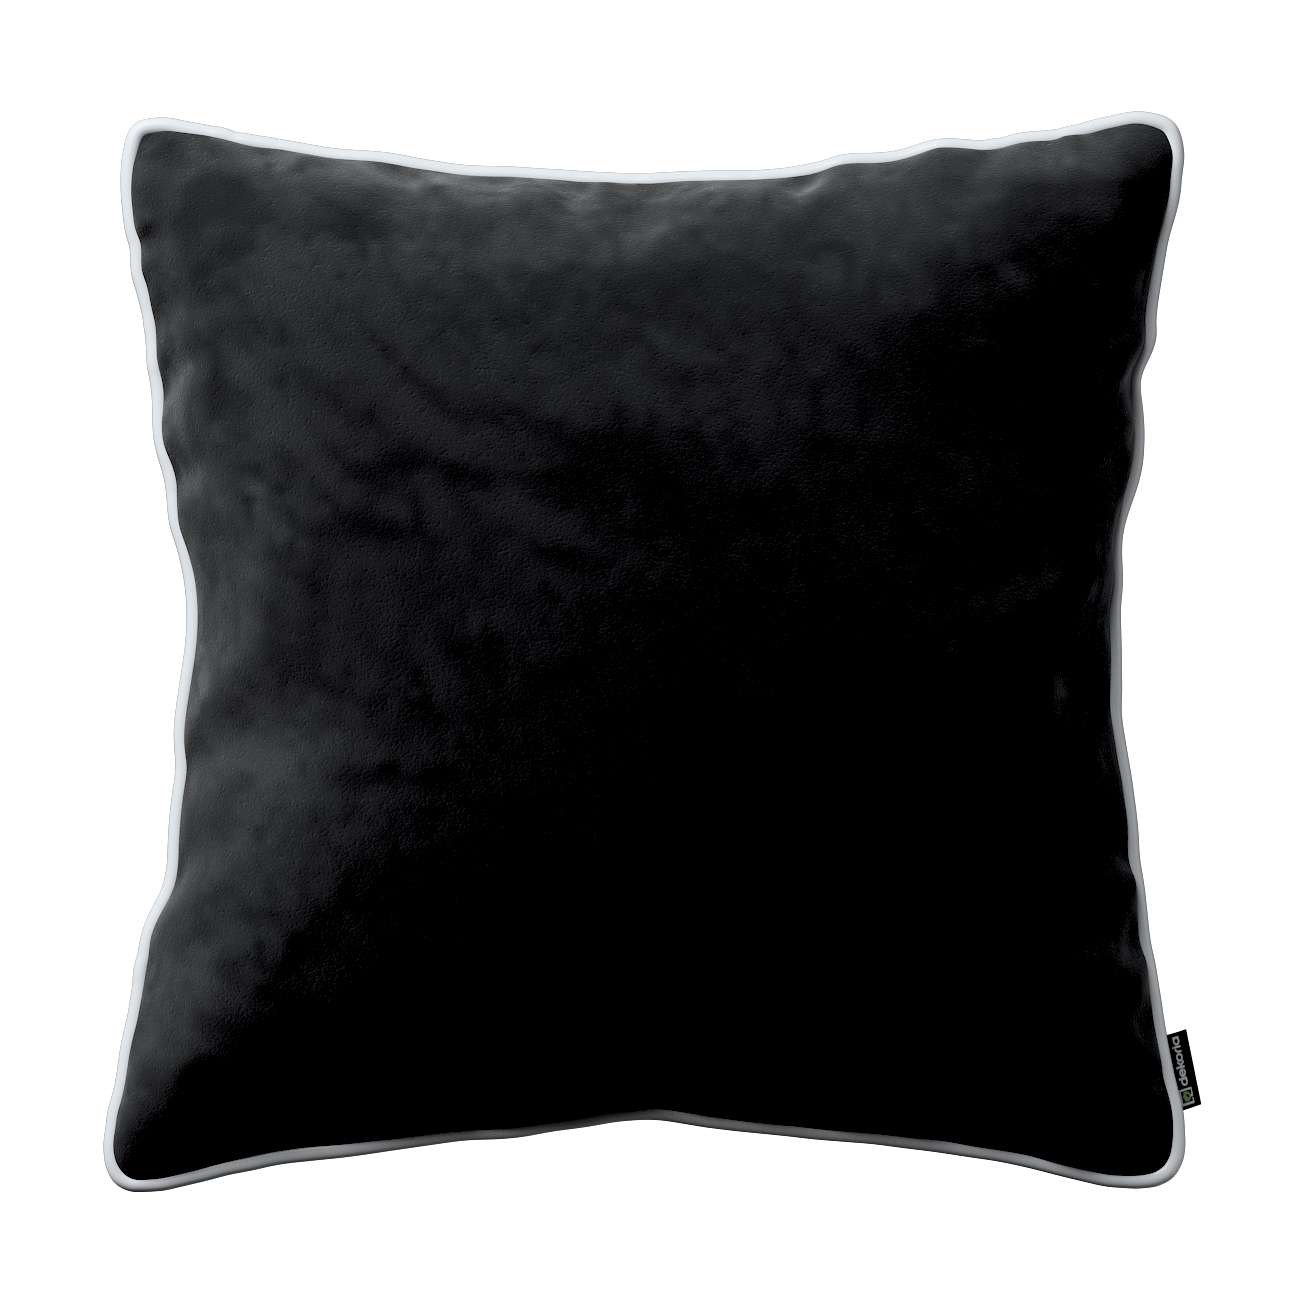 Laura square velvet cushion cover with piping 60x60cm in collection Velvet, fabric: 704-17